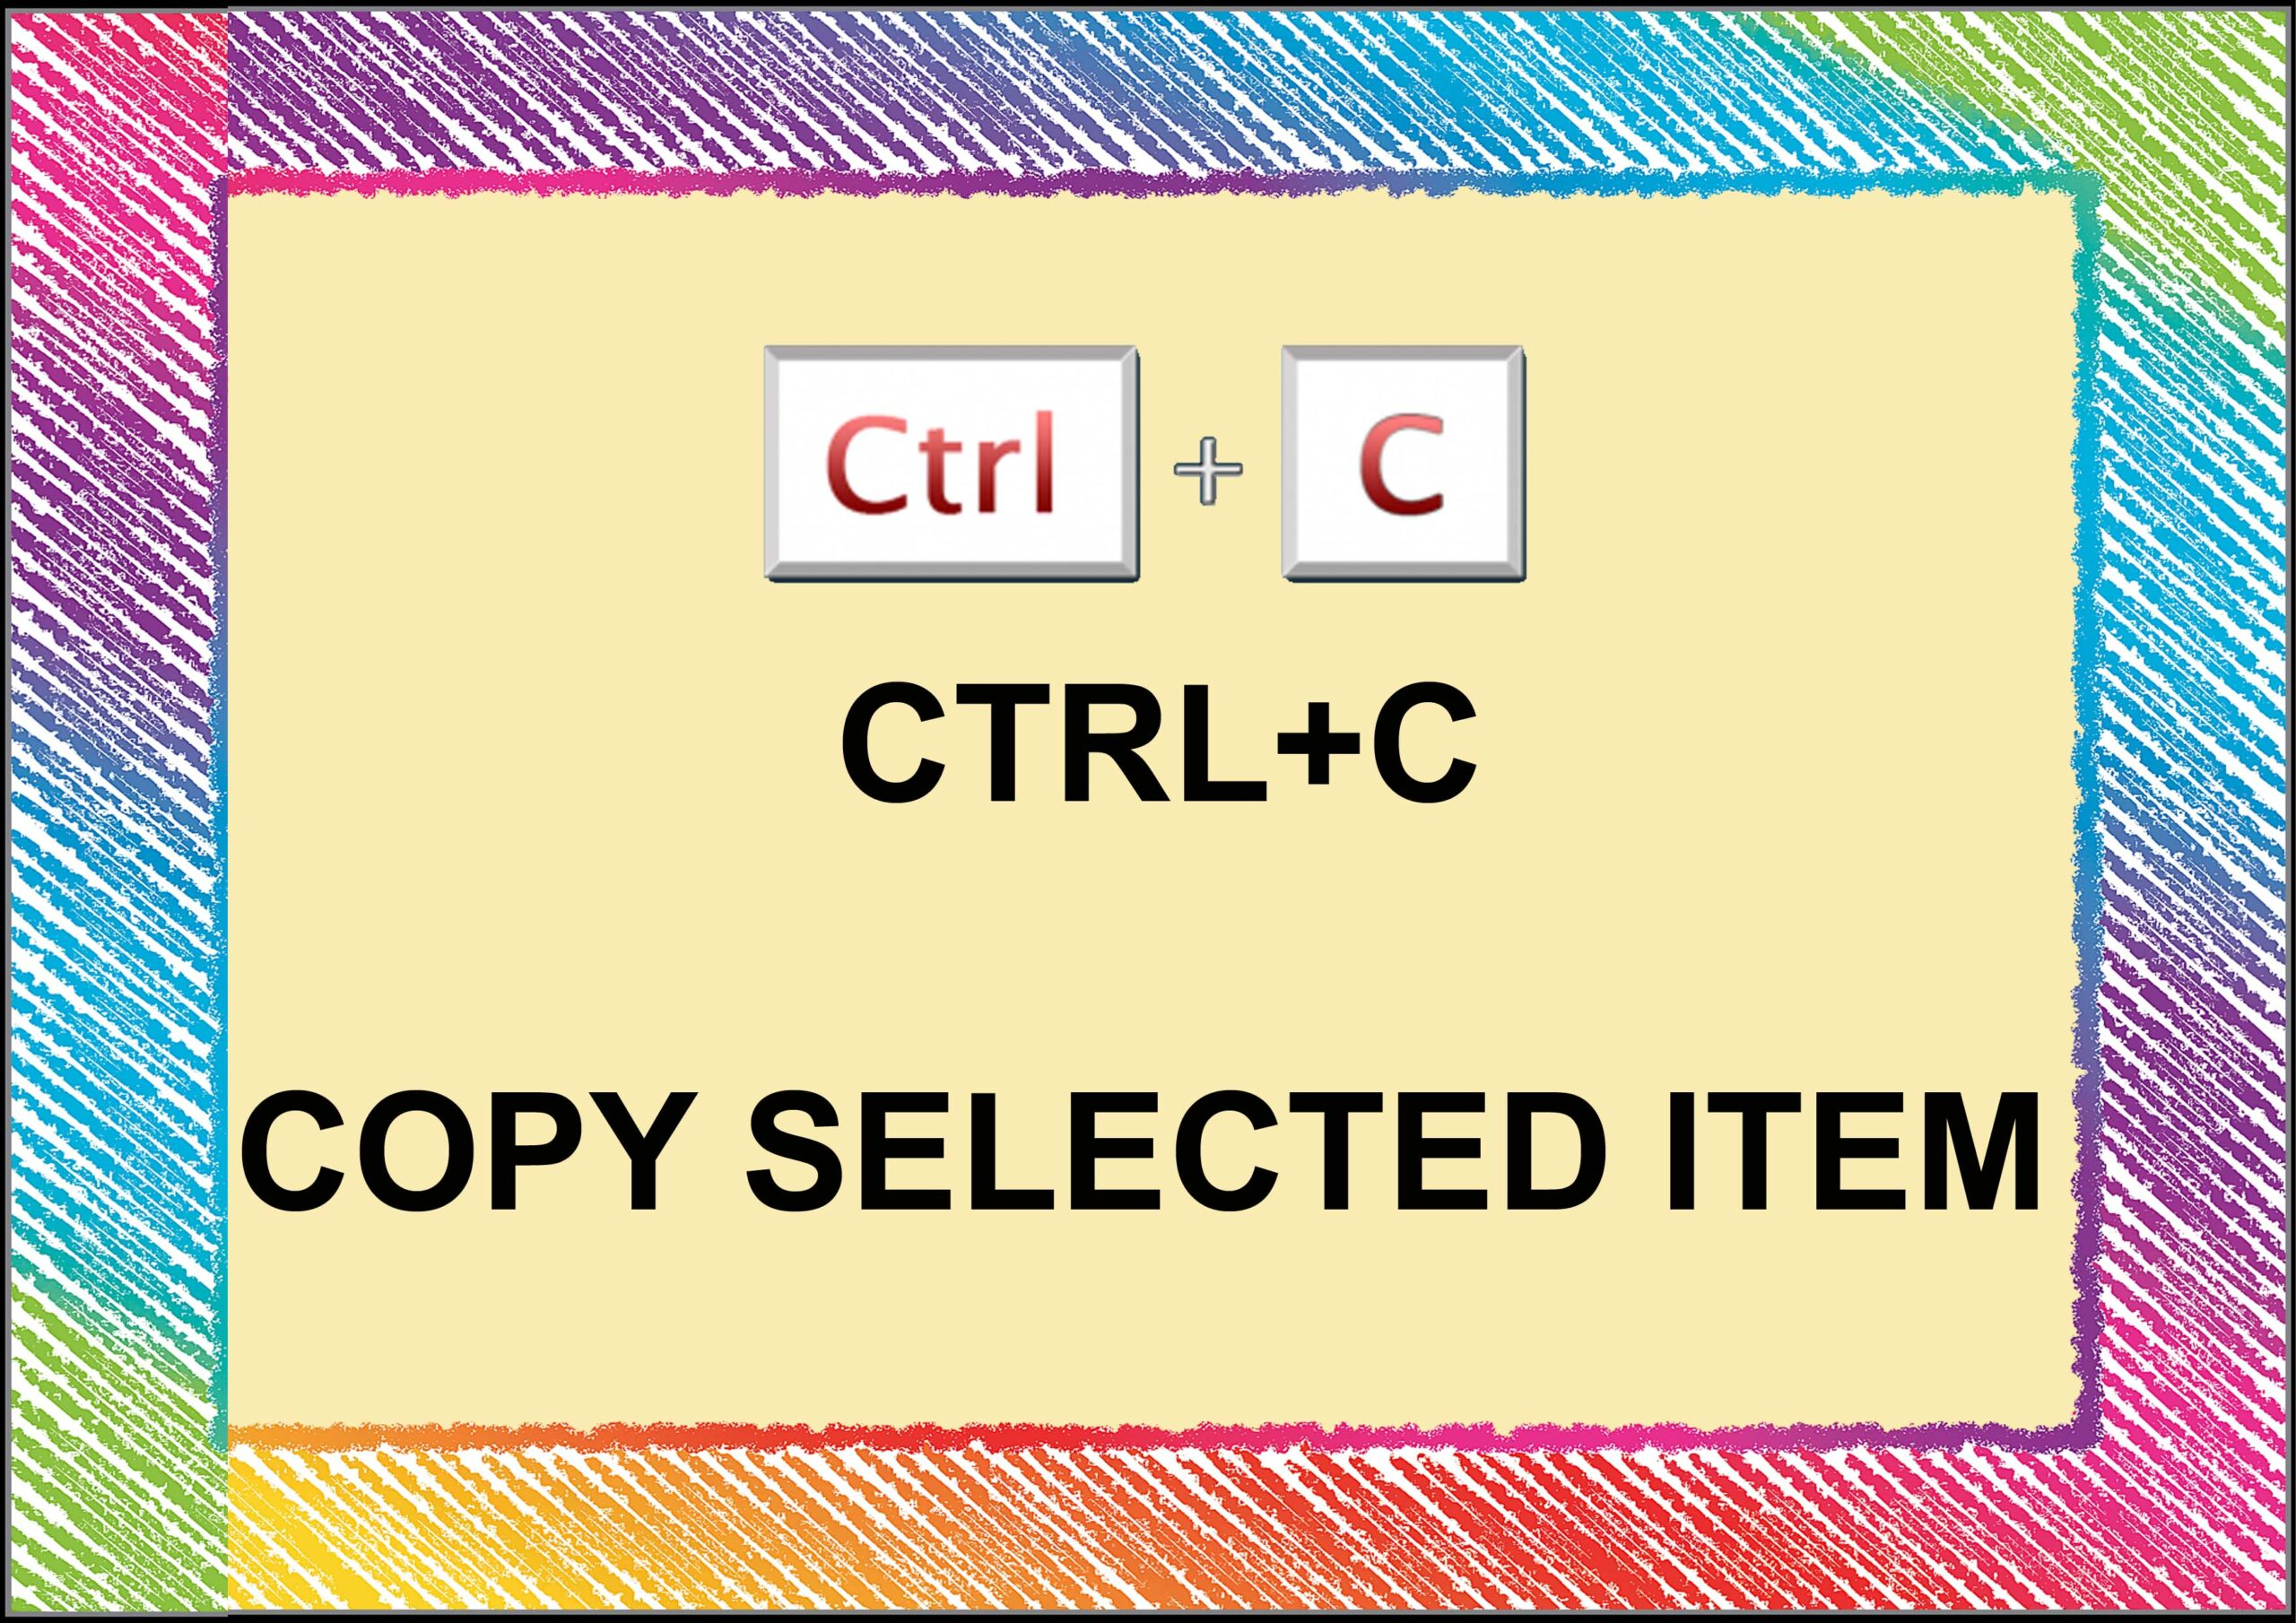 Ctrl+ C=Copy Selected Item